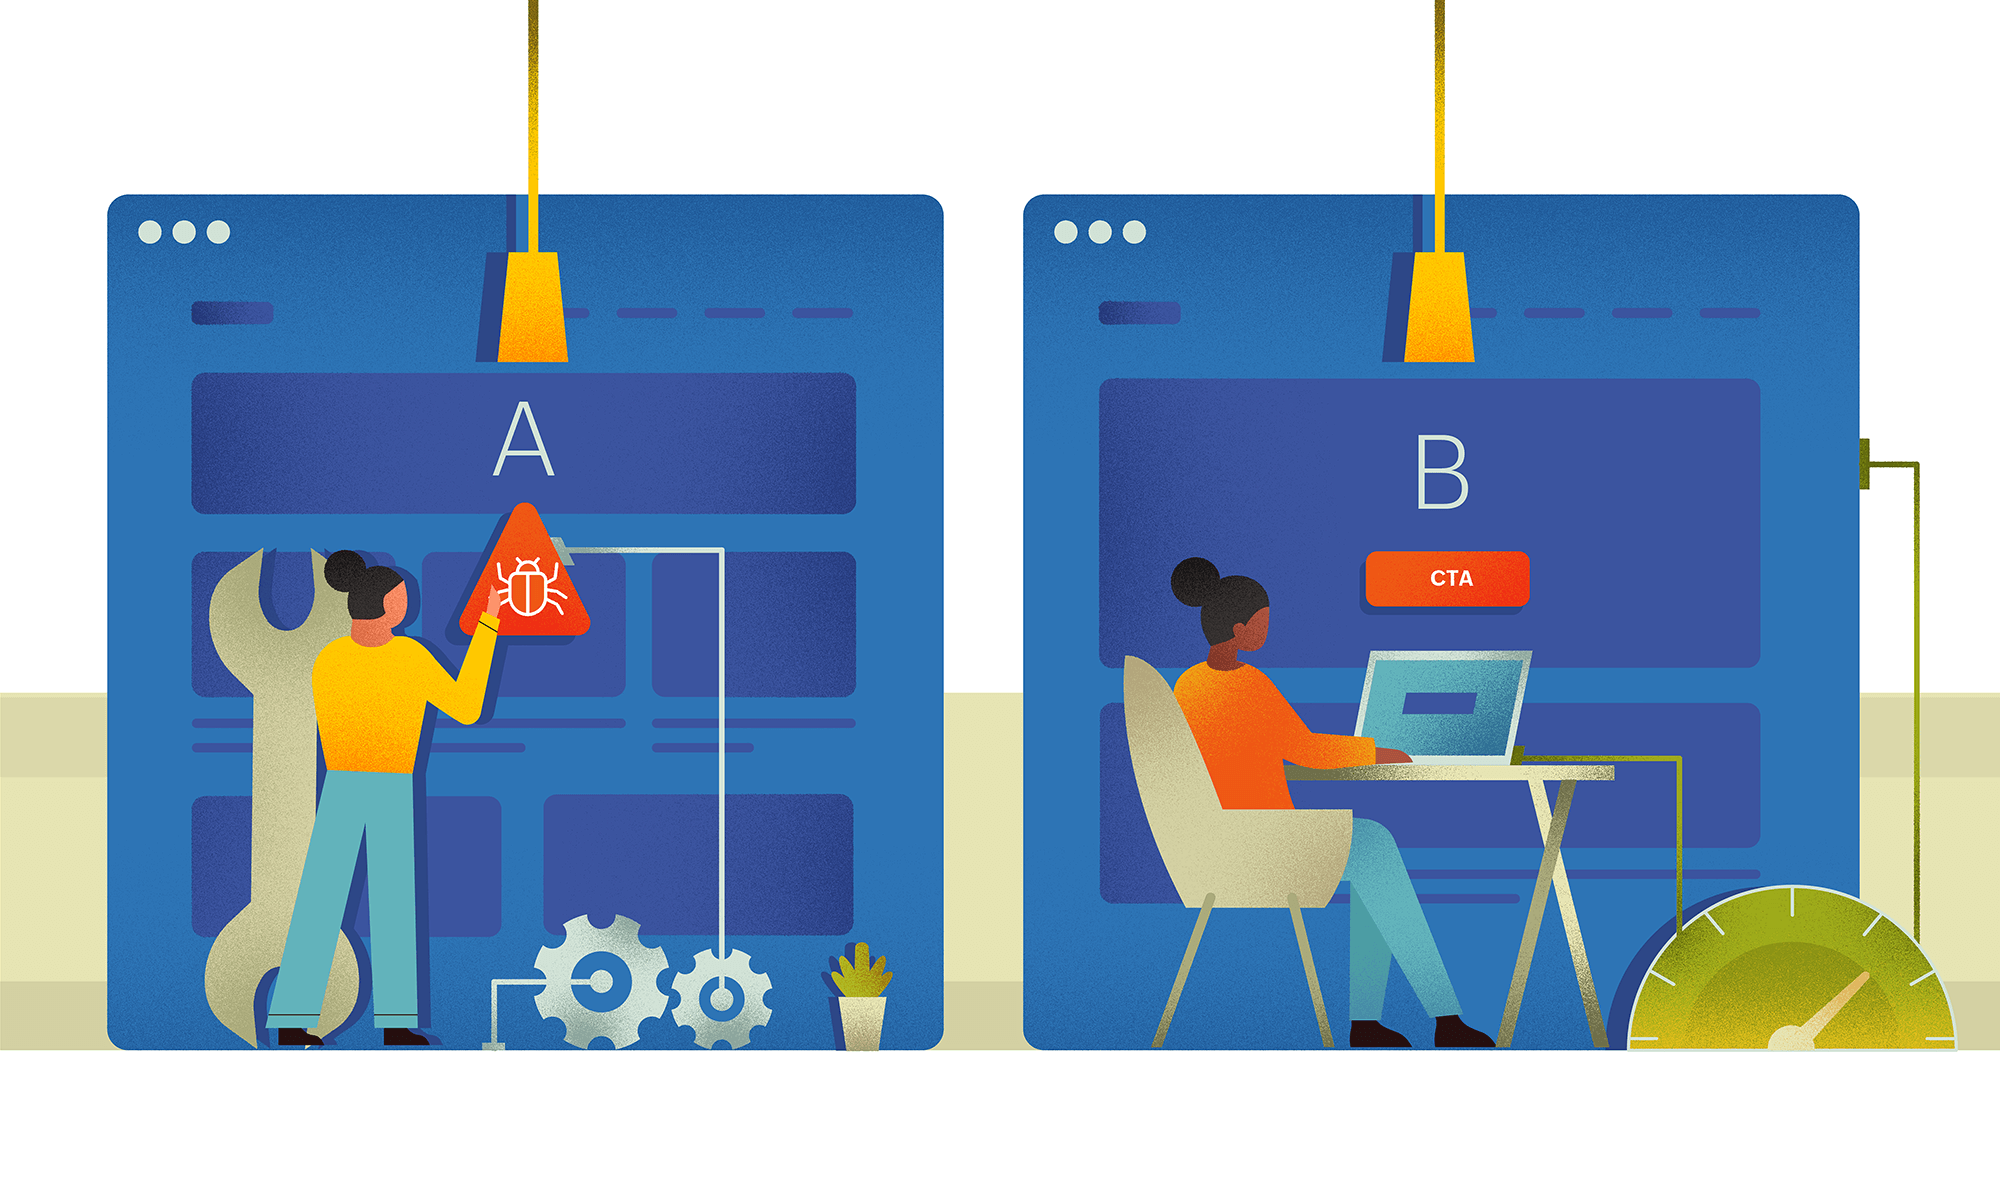 Testing and evaluating a website through A/B tseting and 5 second test before making it live.